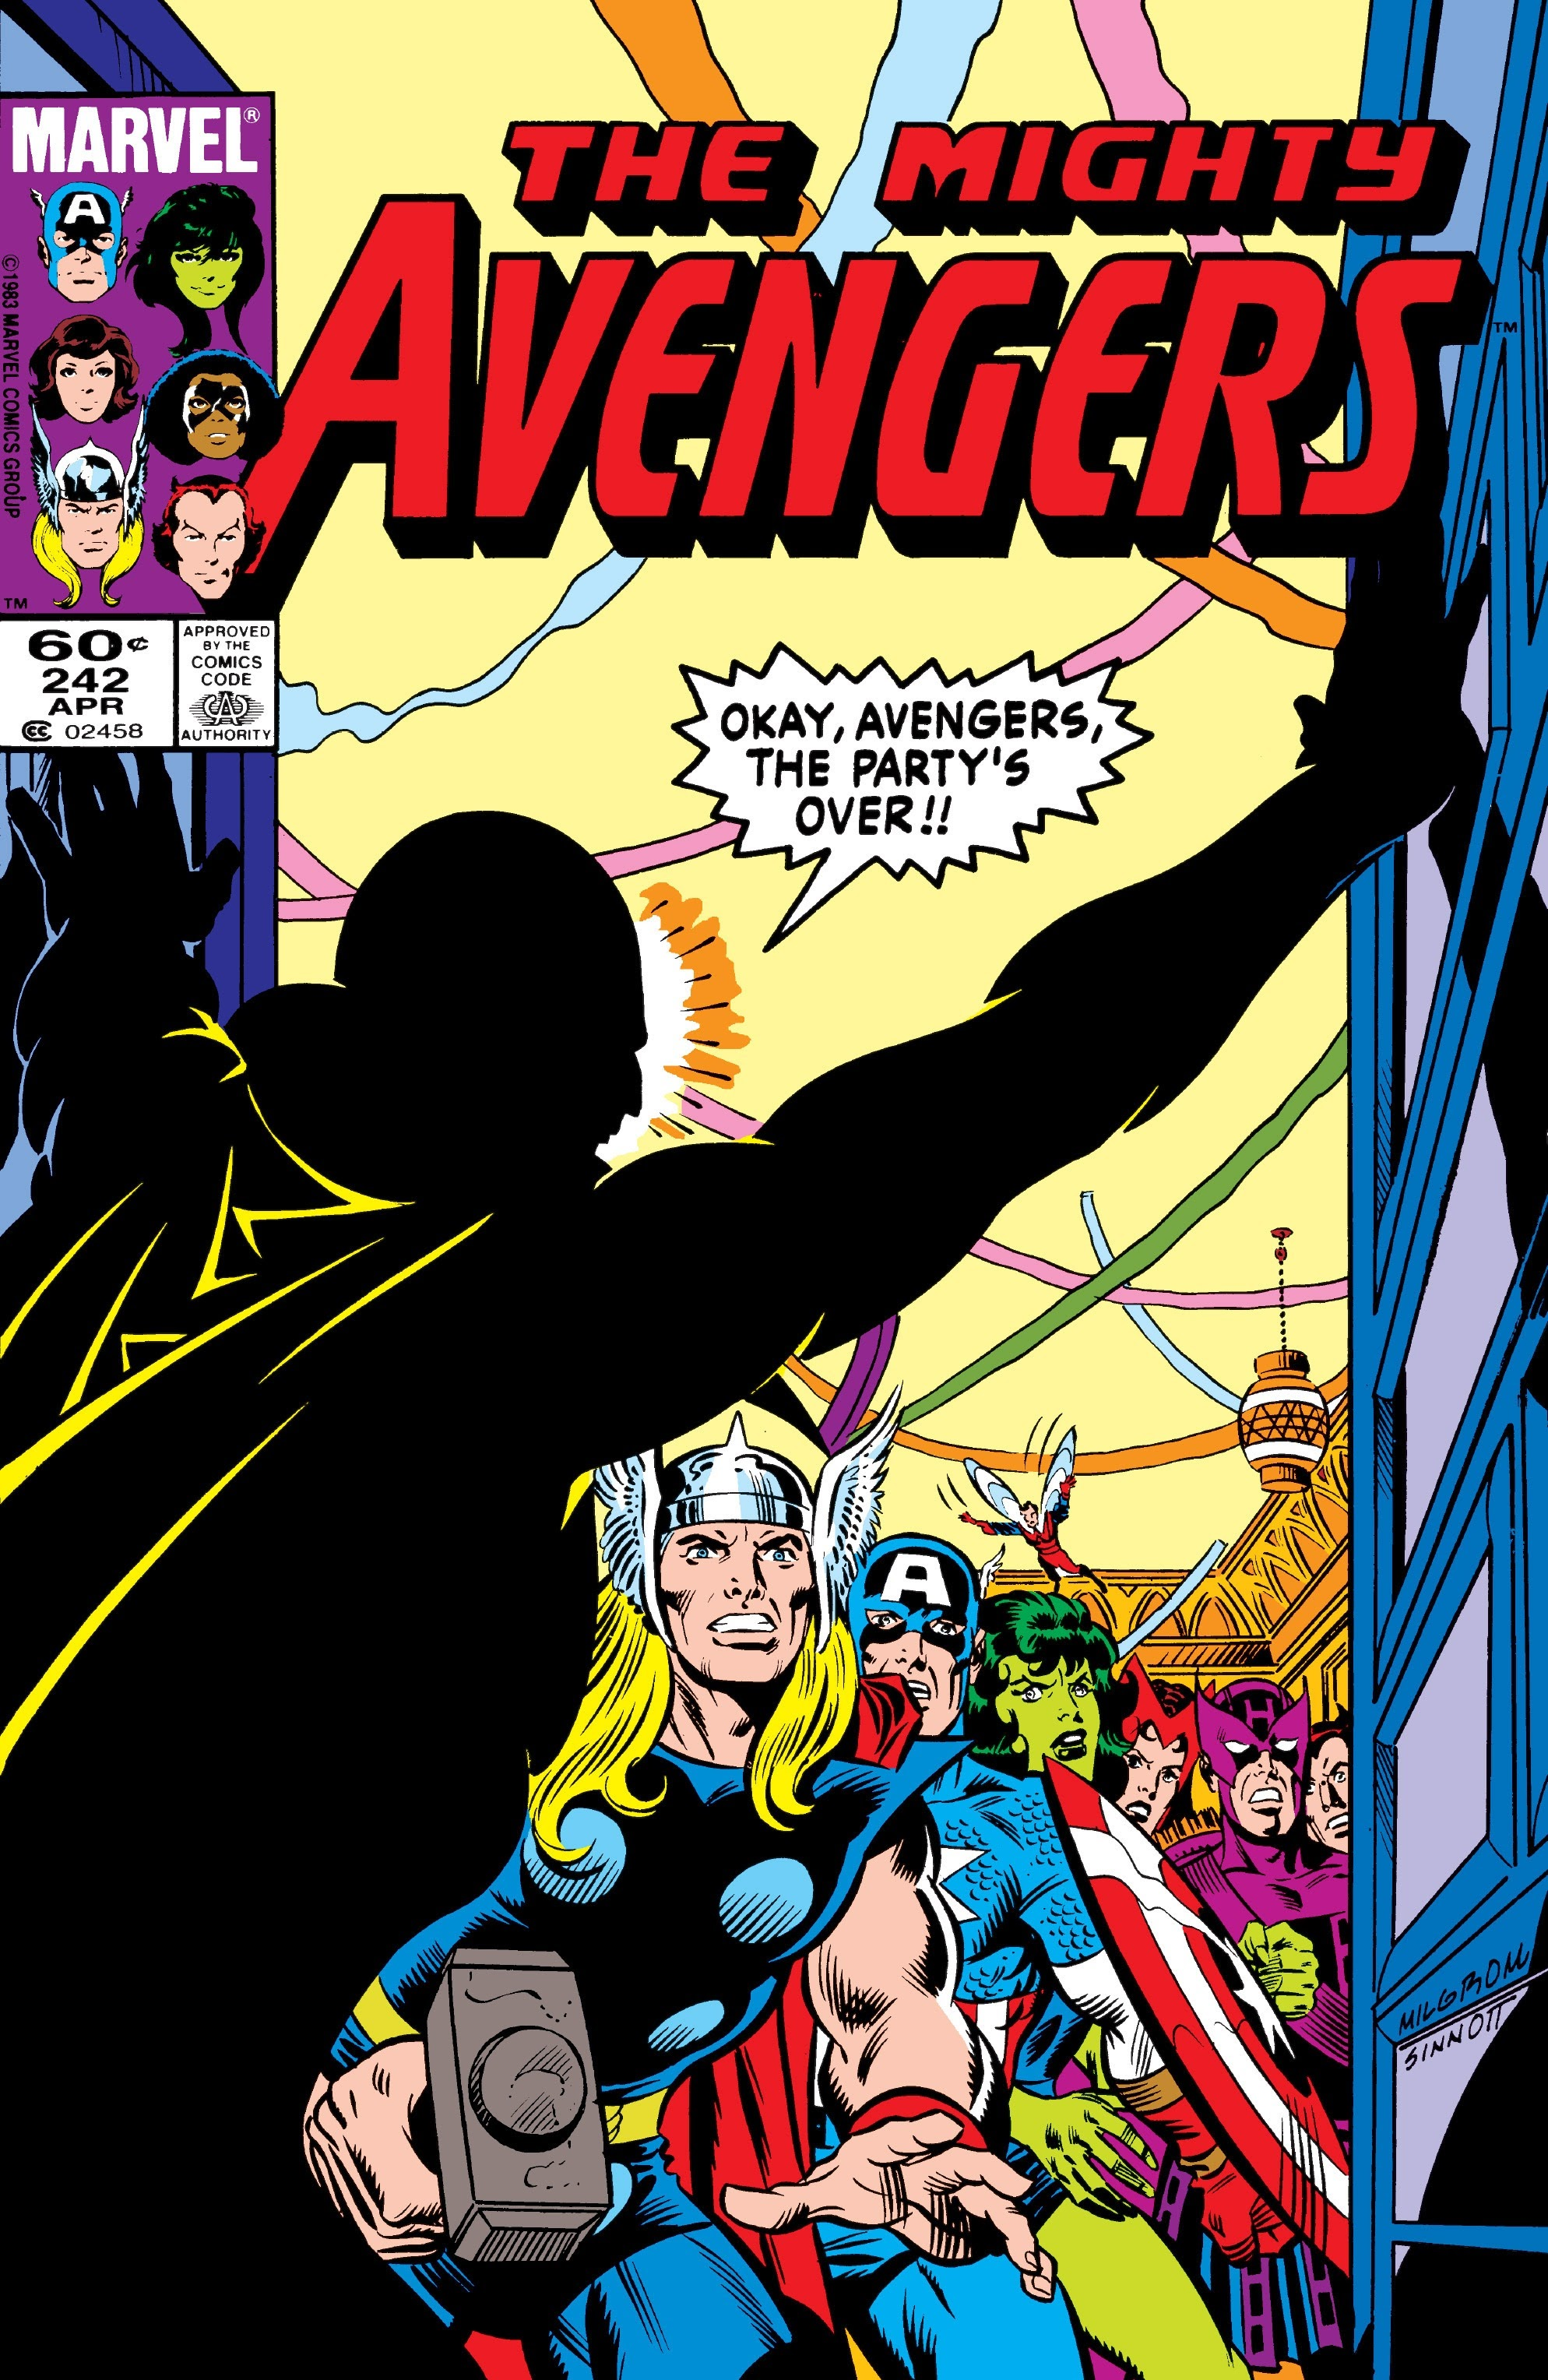 The Avengers (1963) 242 Page 1